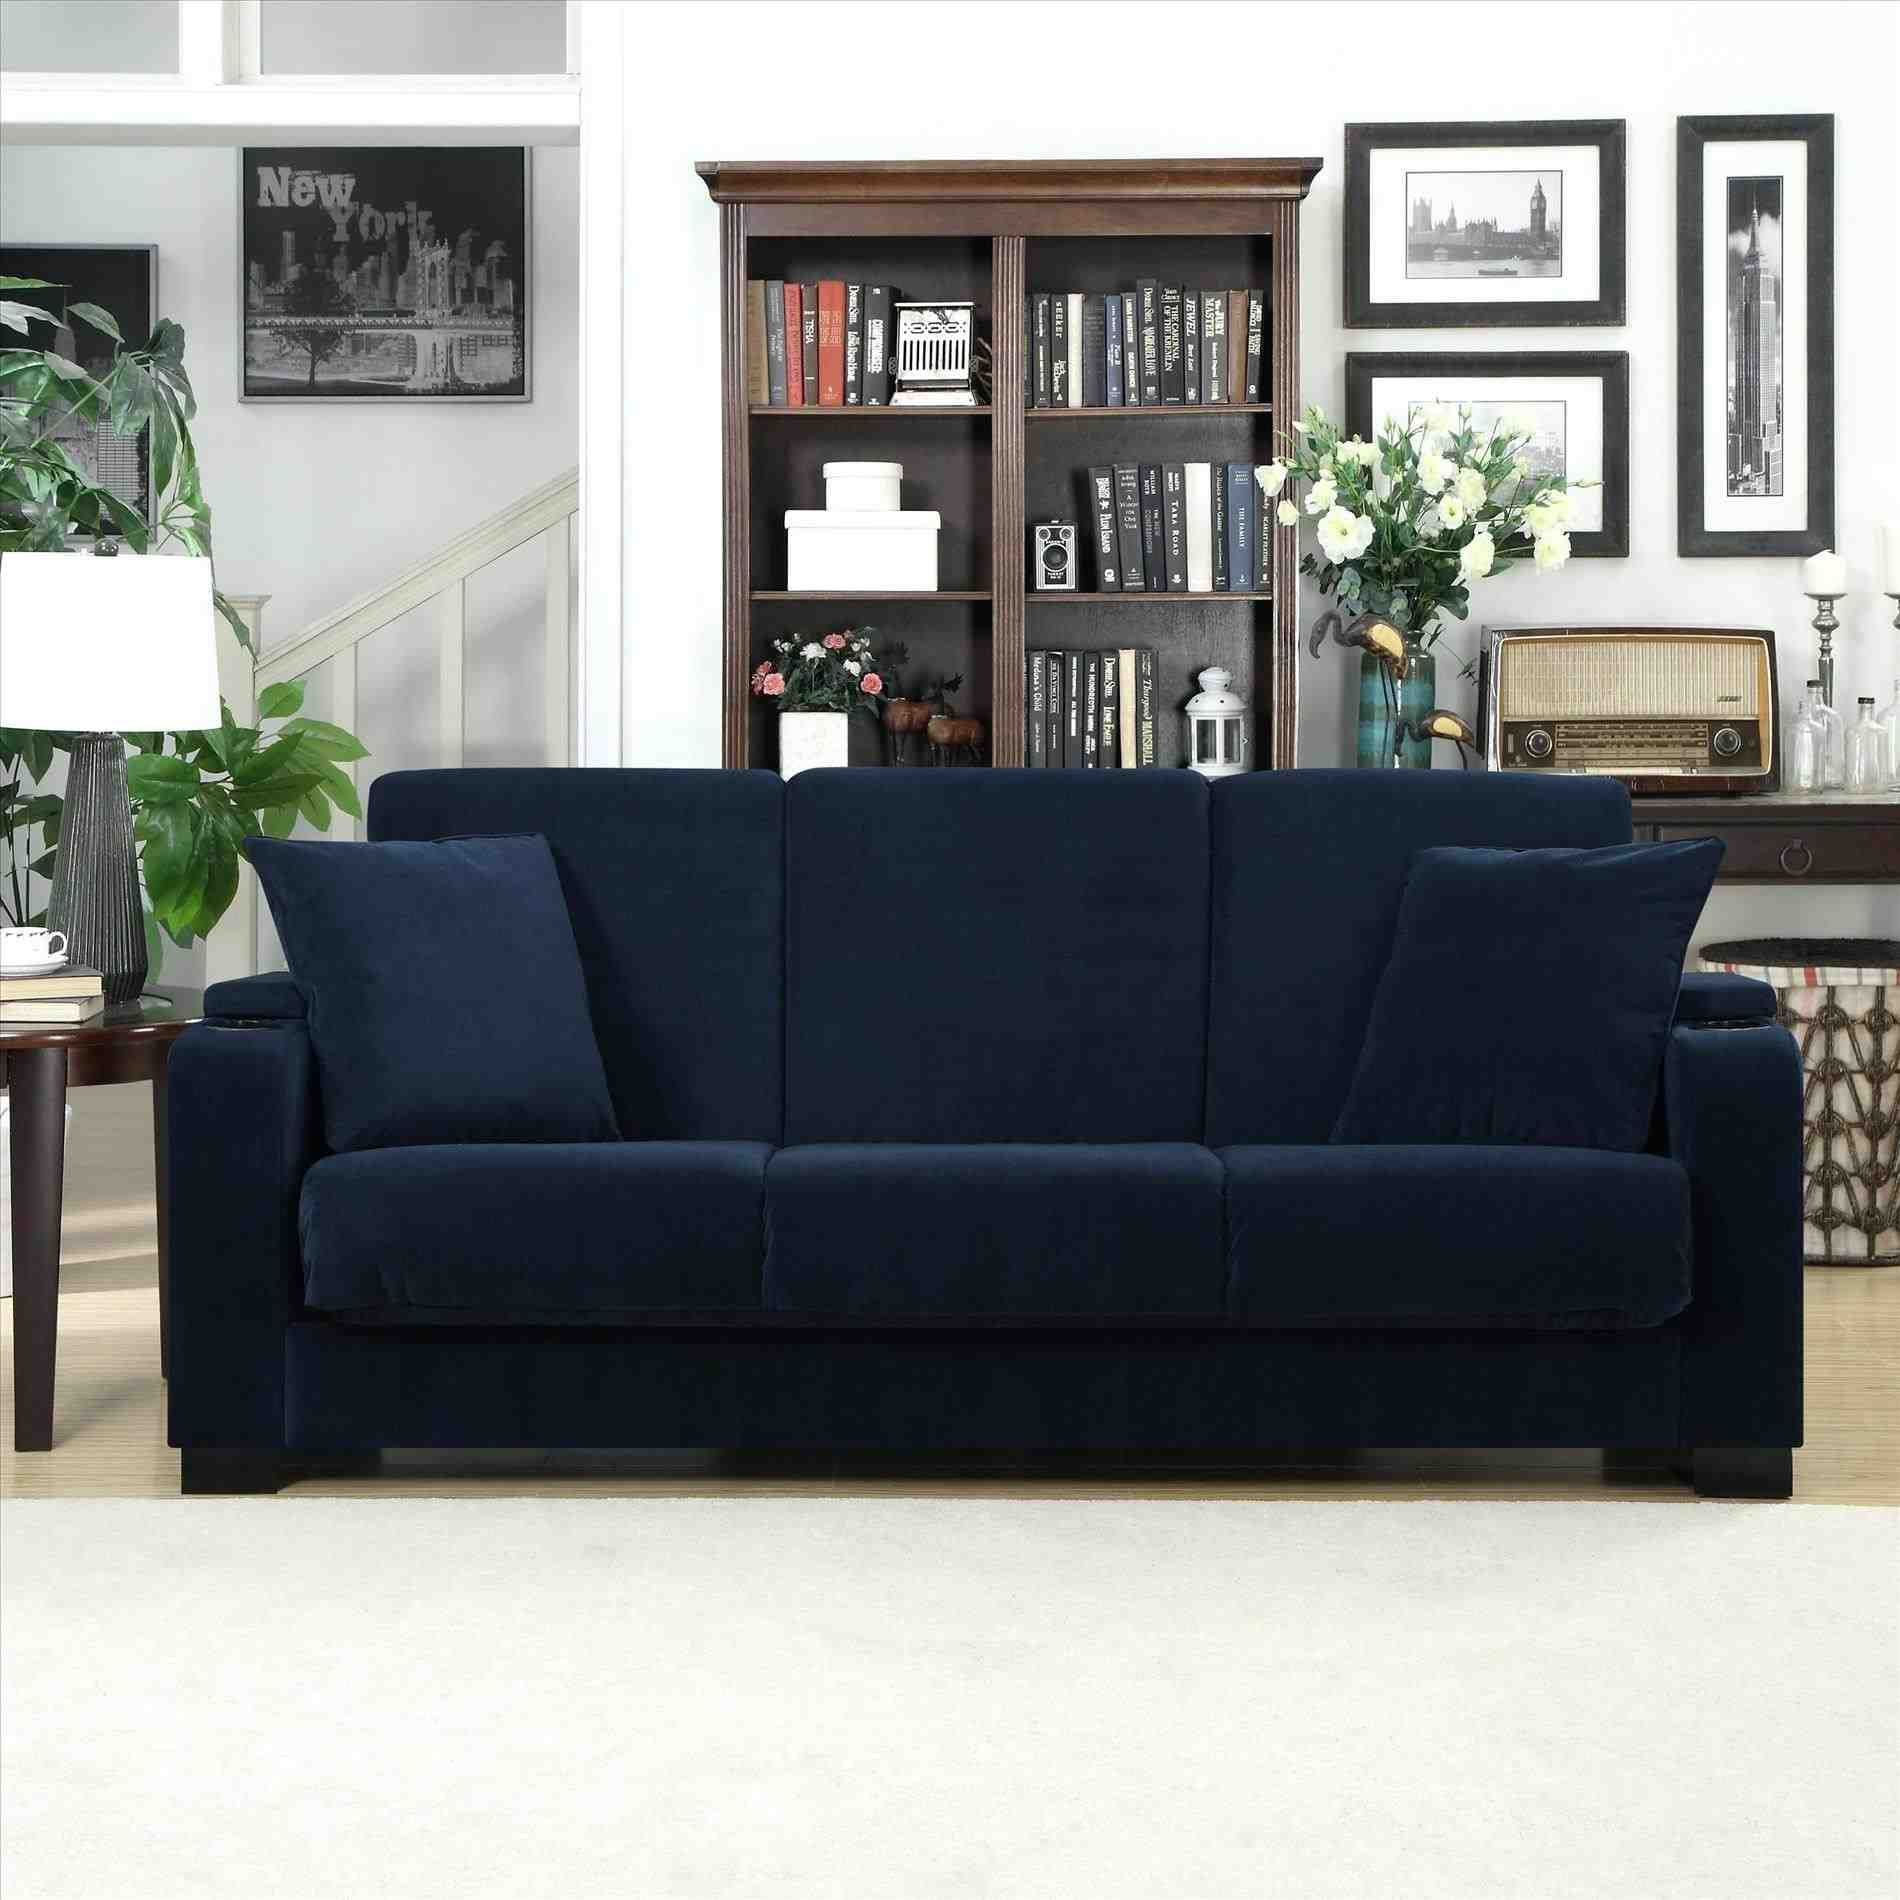 Cheap Sofa Deals Uk Cheap sofas, Sleeper sofa, Cheap couch